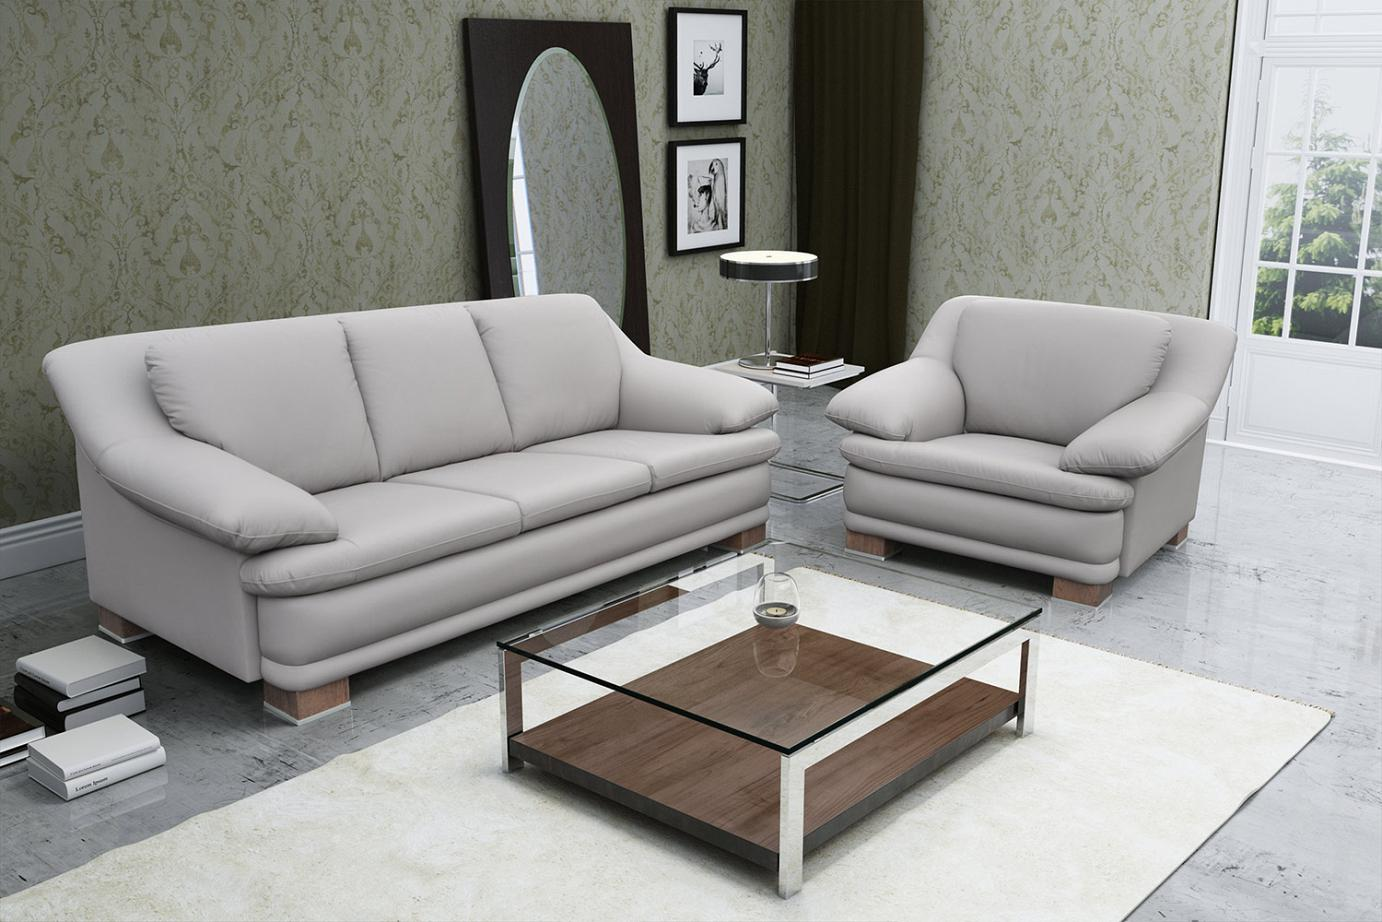 stylish furniture Almiro: Sofa 205 cm with armchair